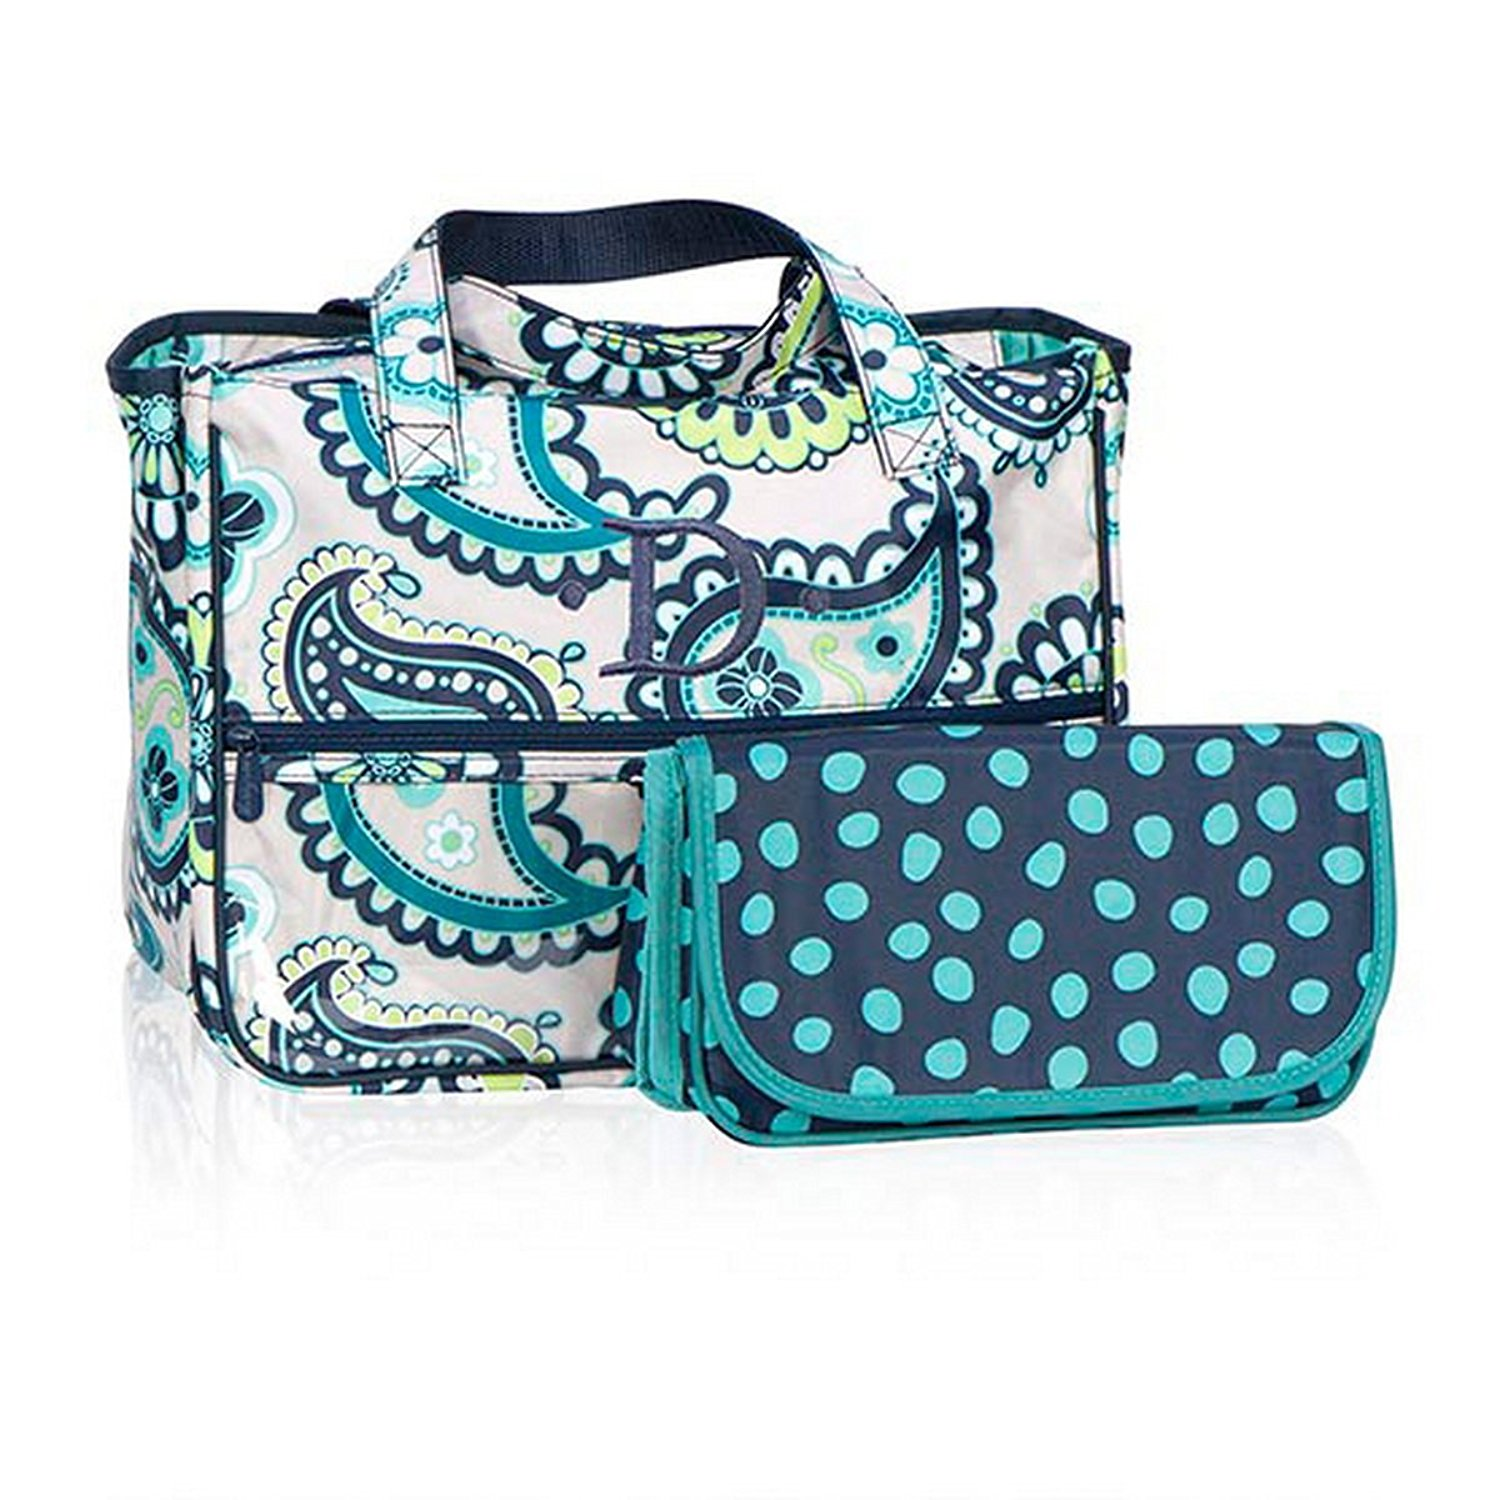 9725c8a7b643 Buy Thirty One True Beauty Bag in Paisley Day - No Monogram - 4484 ...